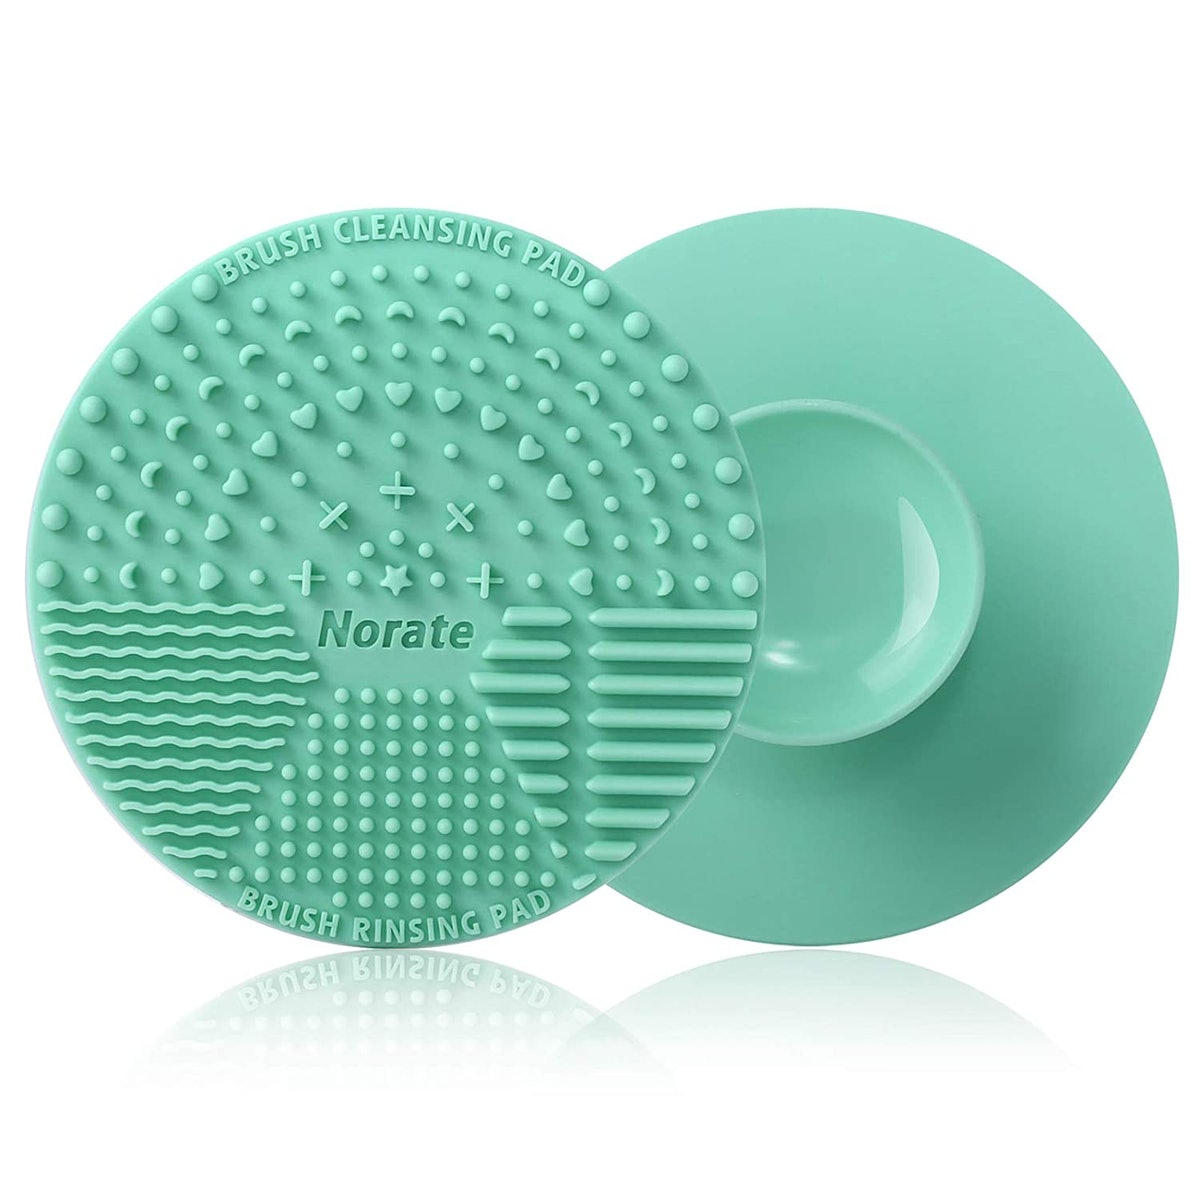 Norate Brush Cleansing Pad